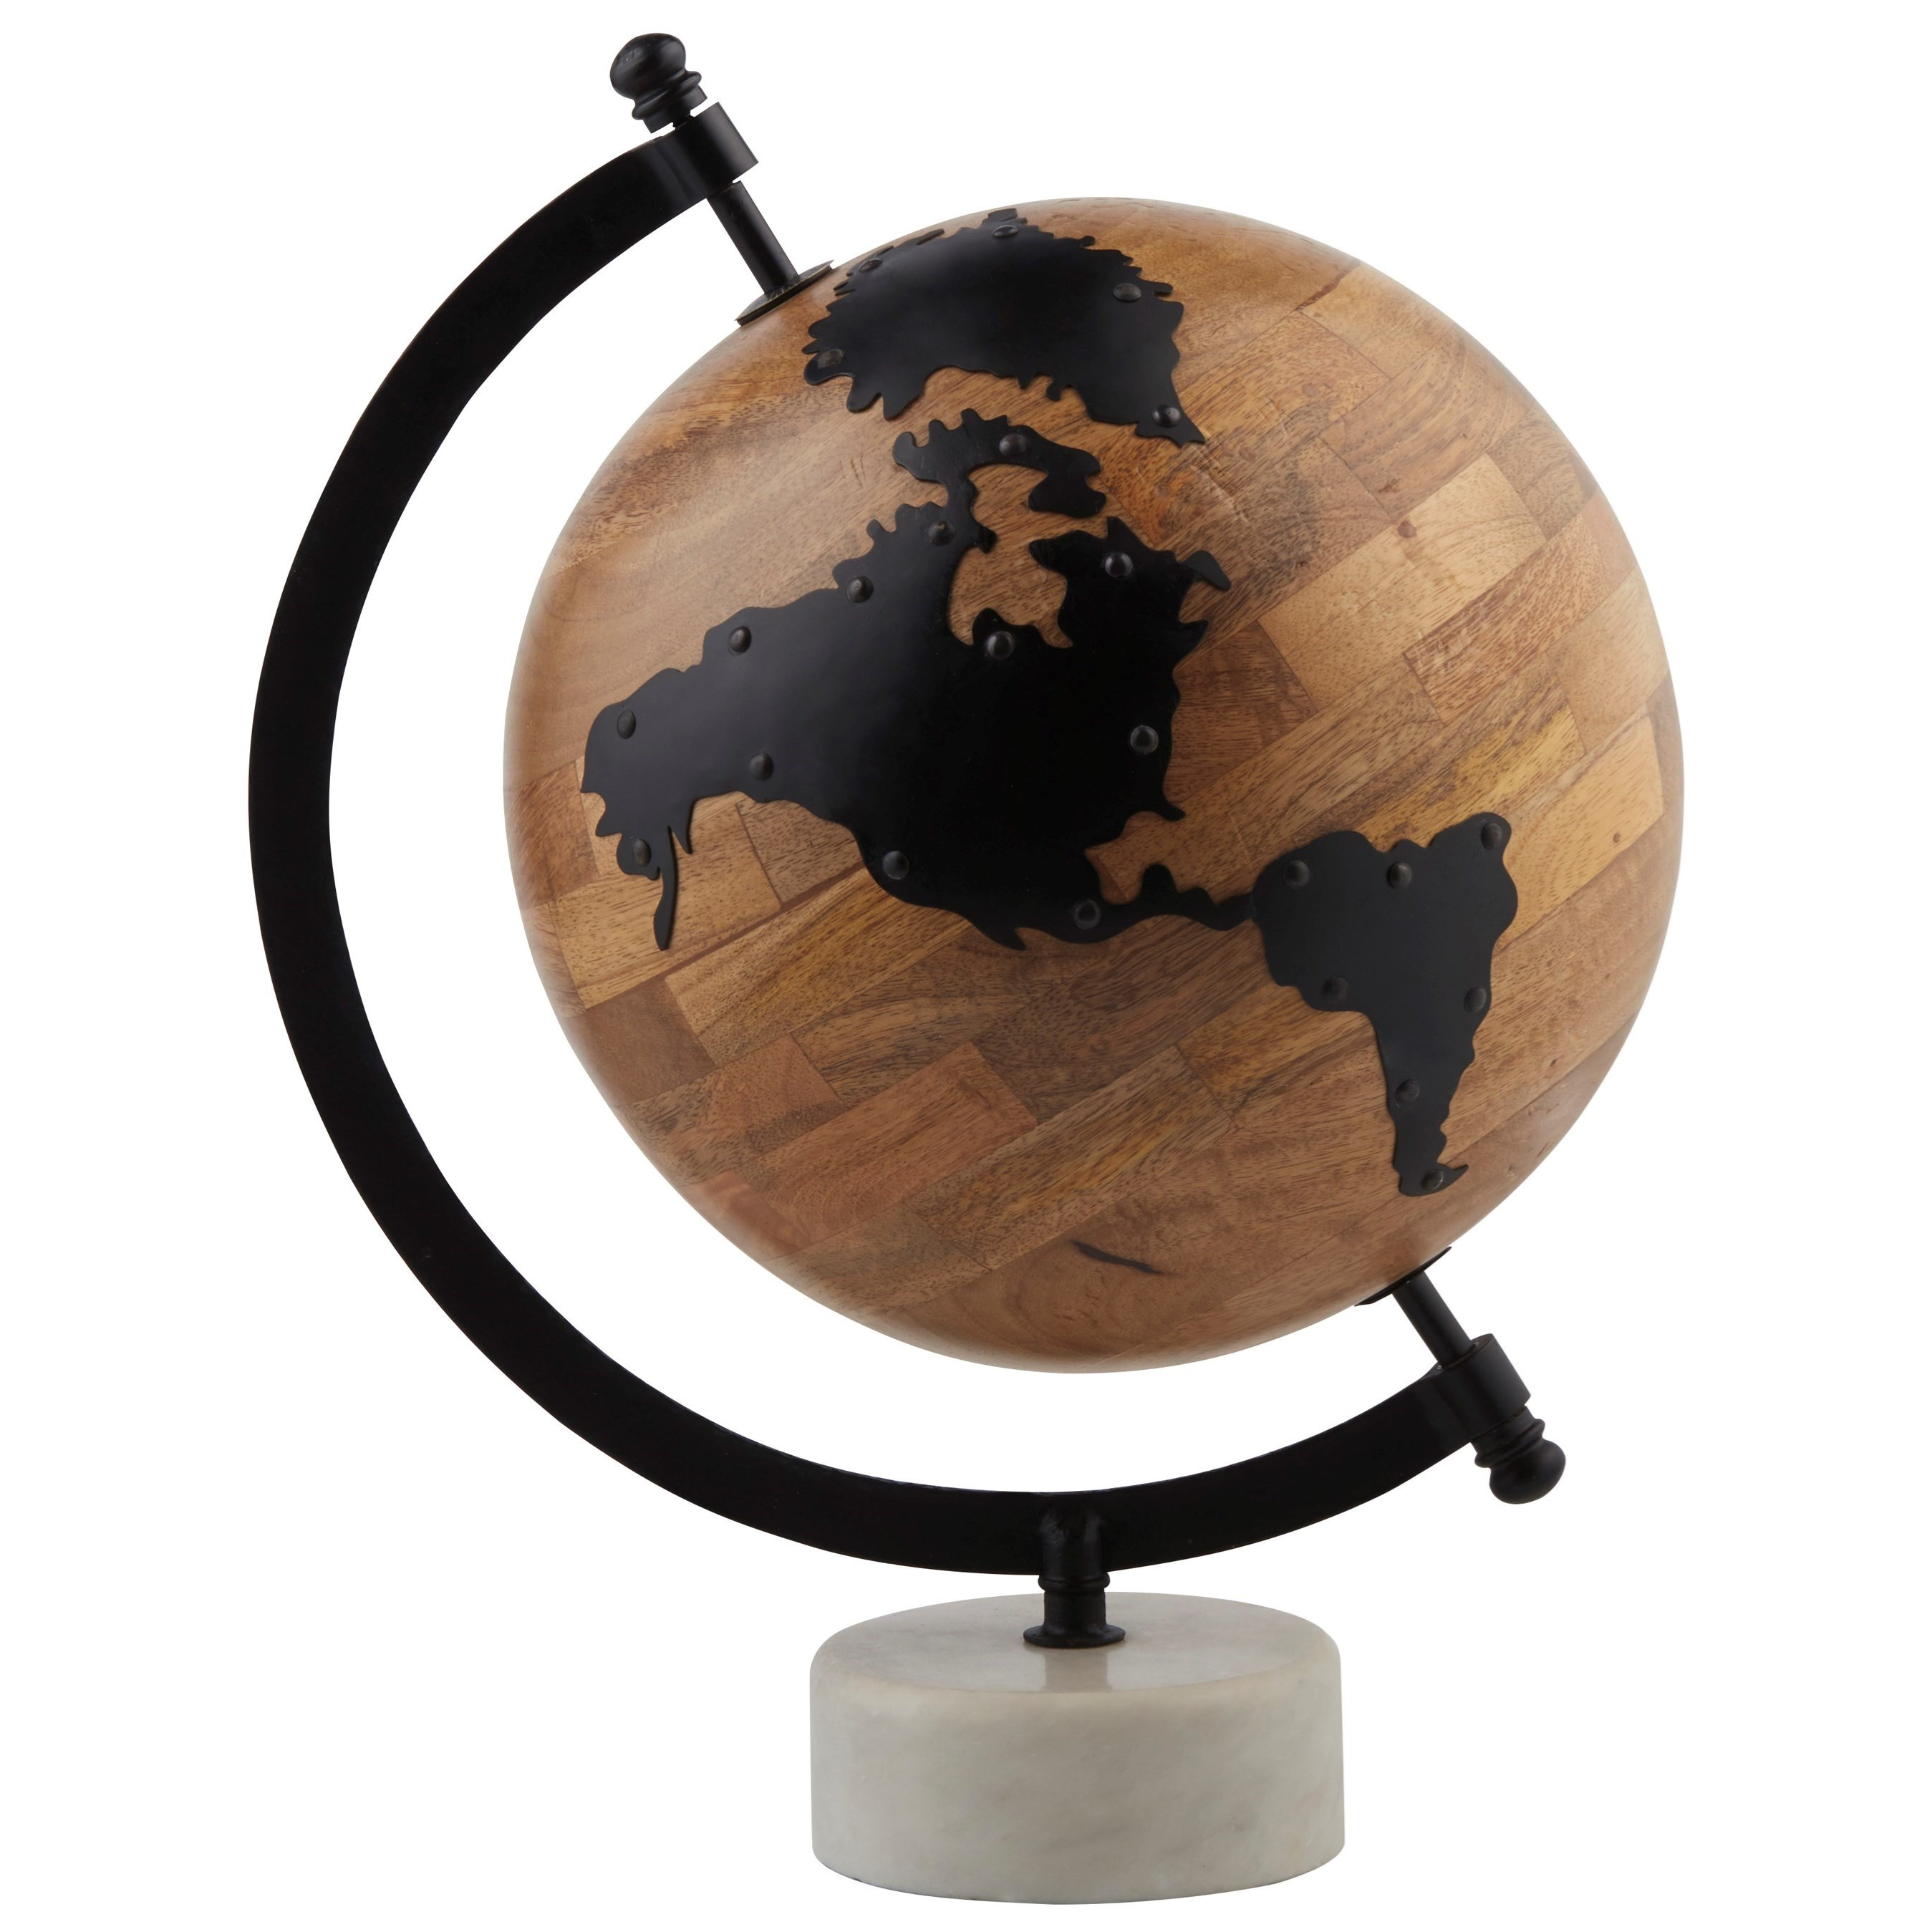 Accents Alameda Natural/Black Globe Sculpture by Signature Design by Ashley at Coconis Furniture & Mattress 1st